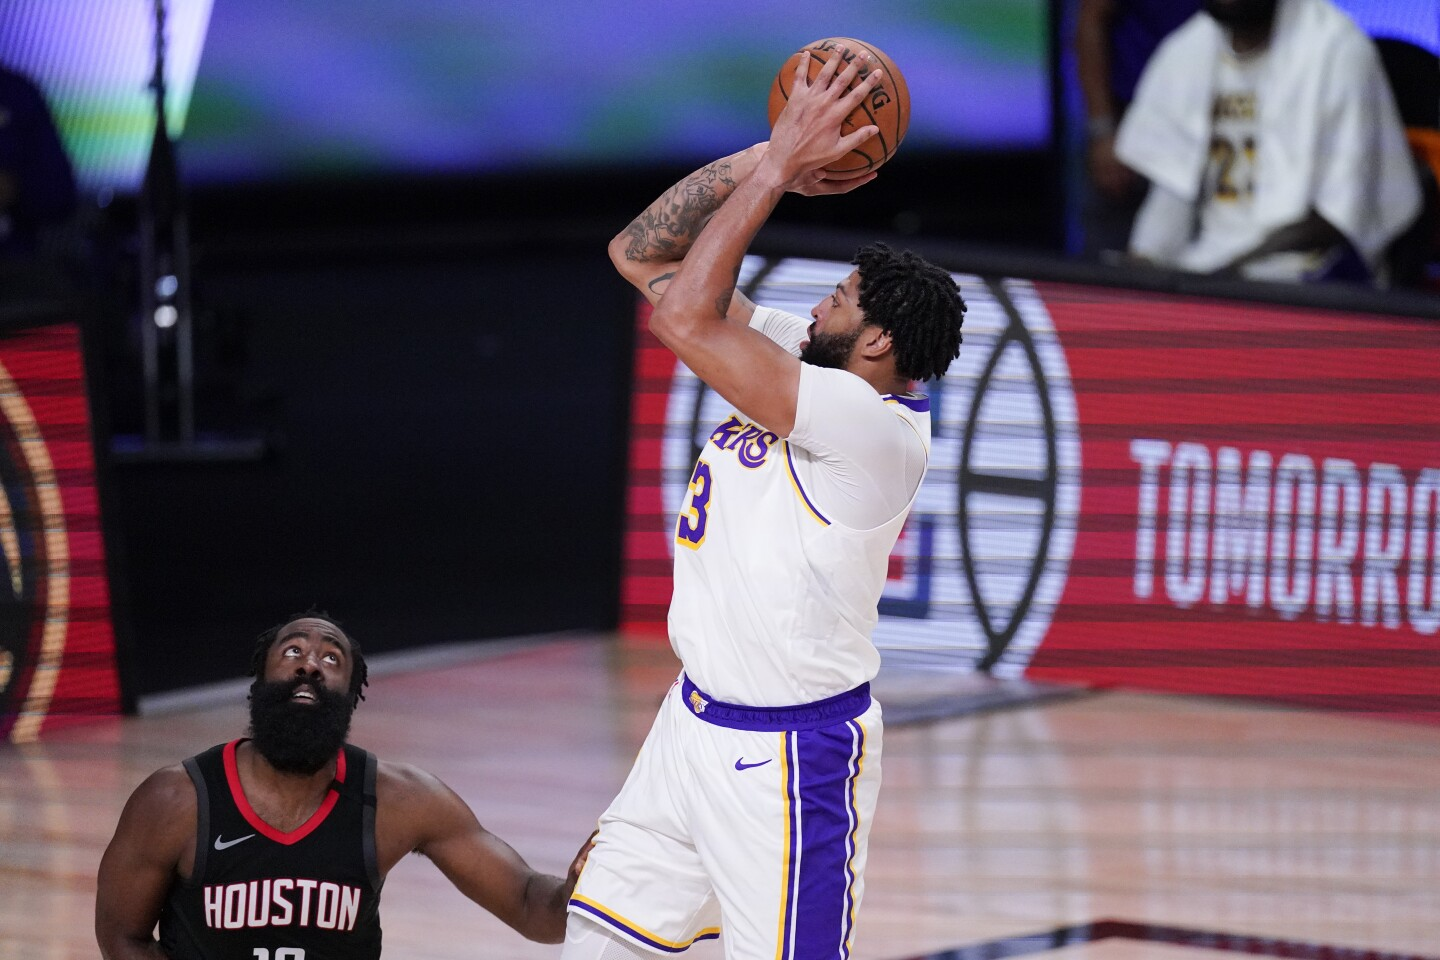 The Lakers' Anthony Davis shoots over the Rockets' James Harden in the first half of Game 5 on Saturday near Orlando, Fla.